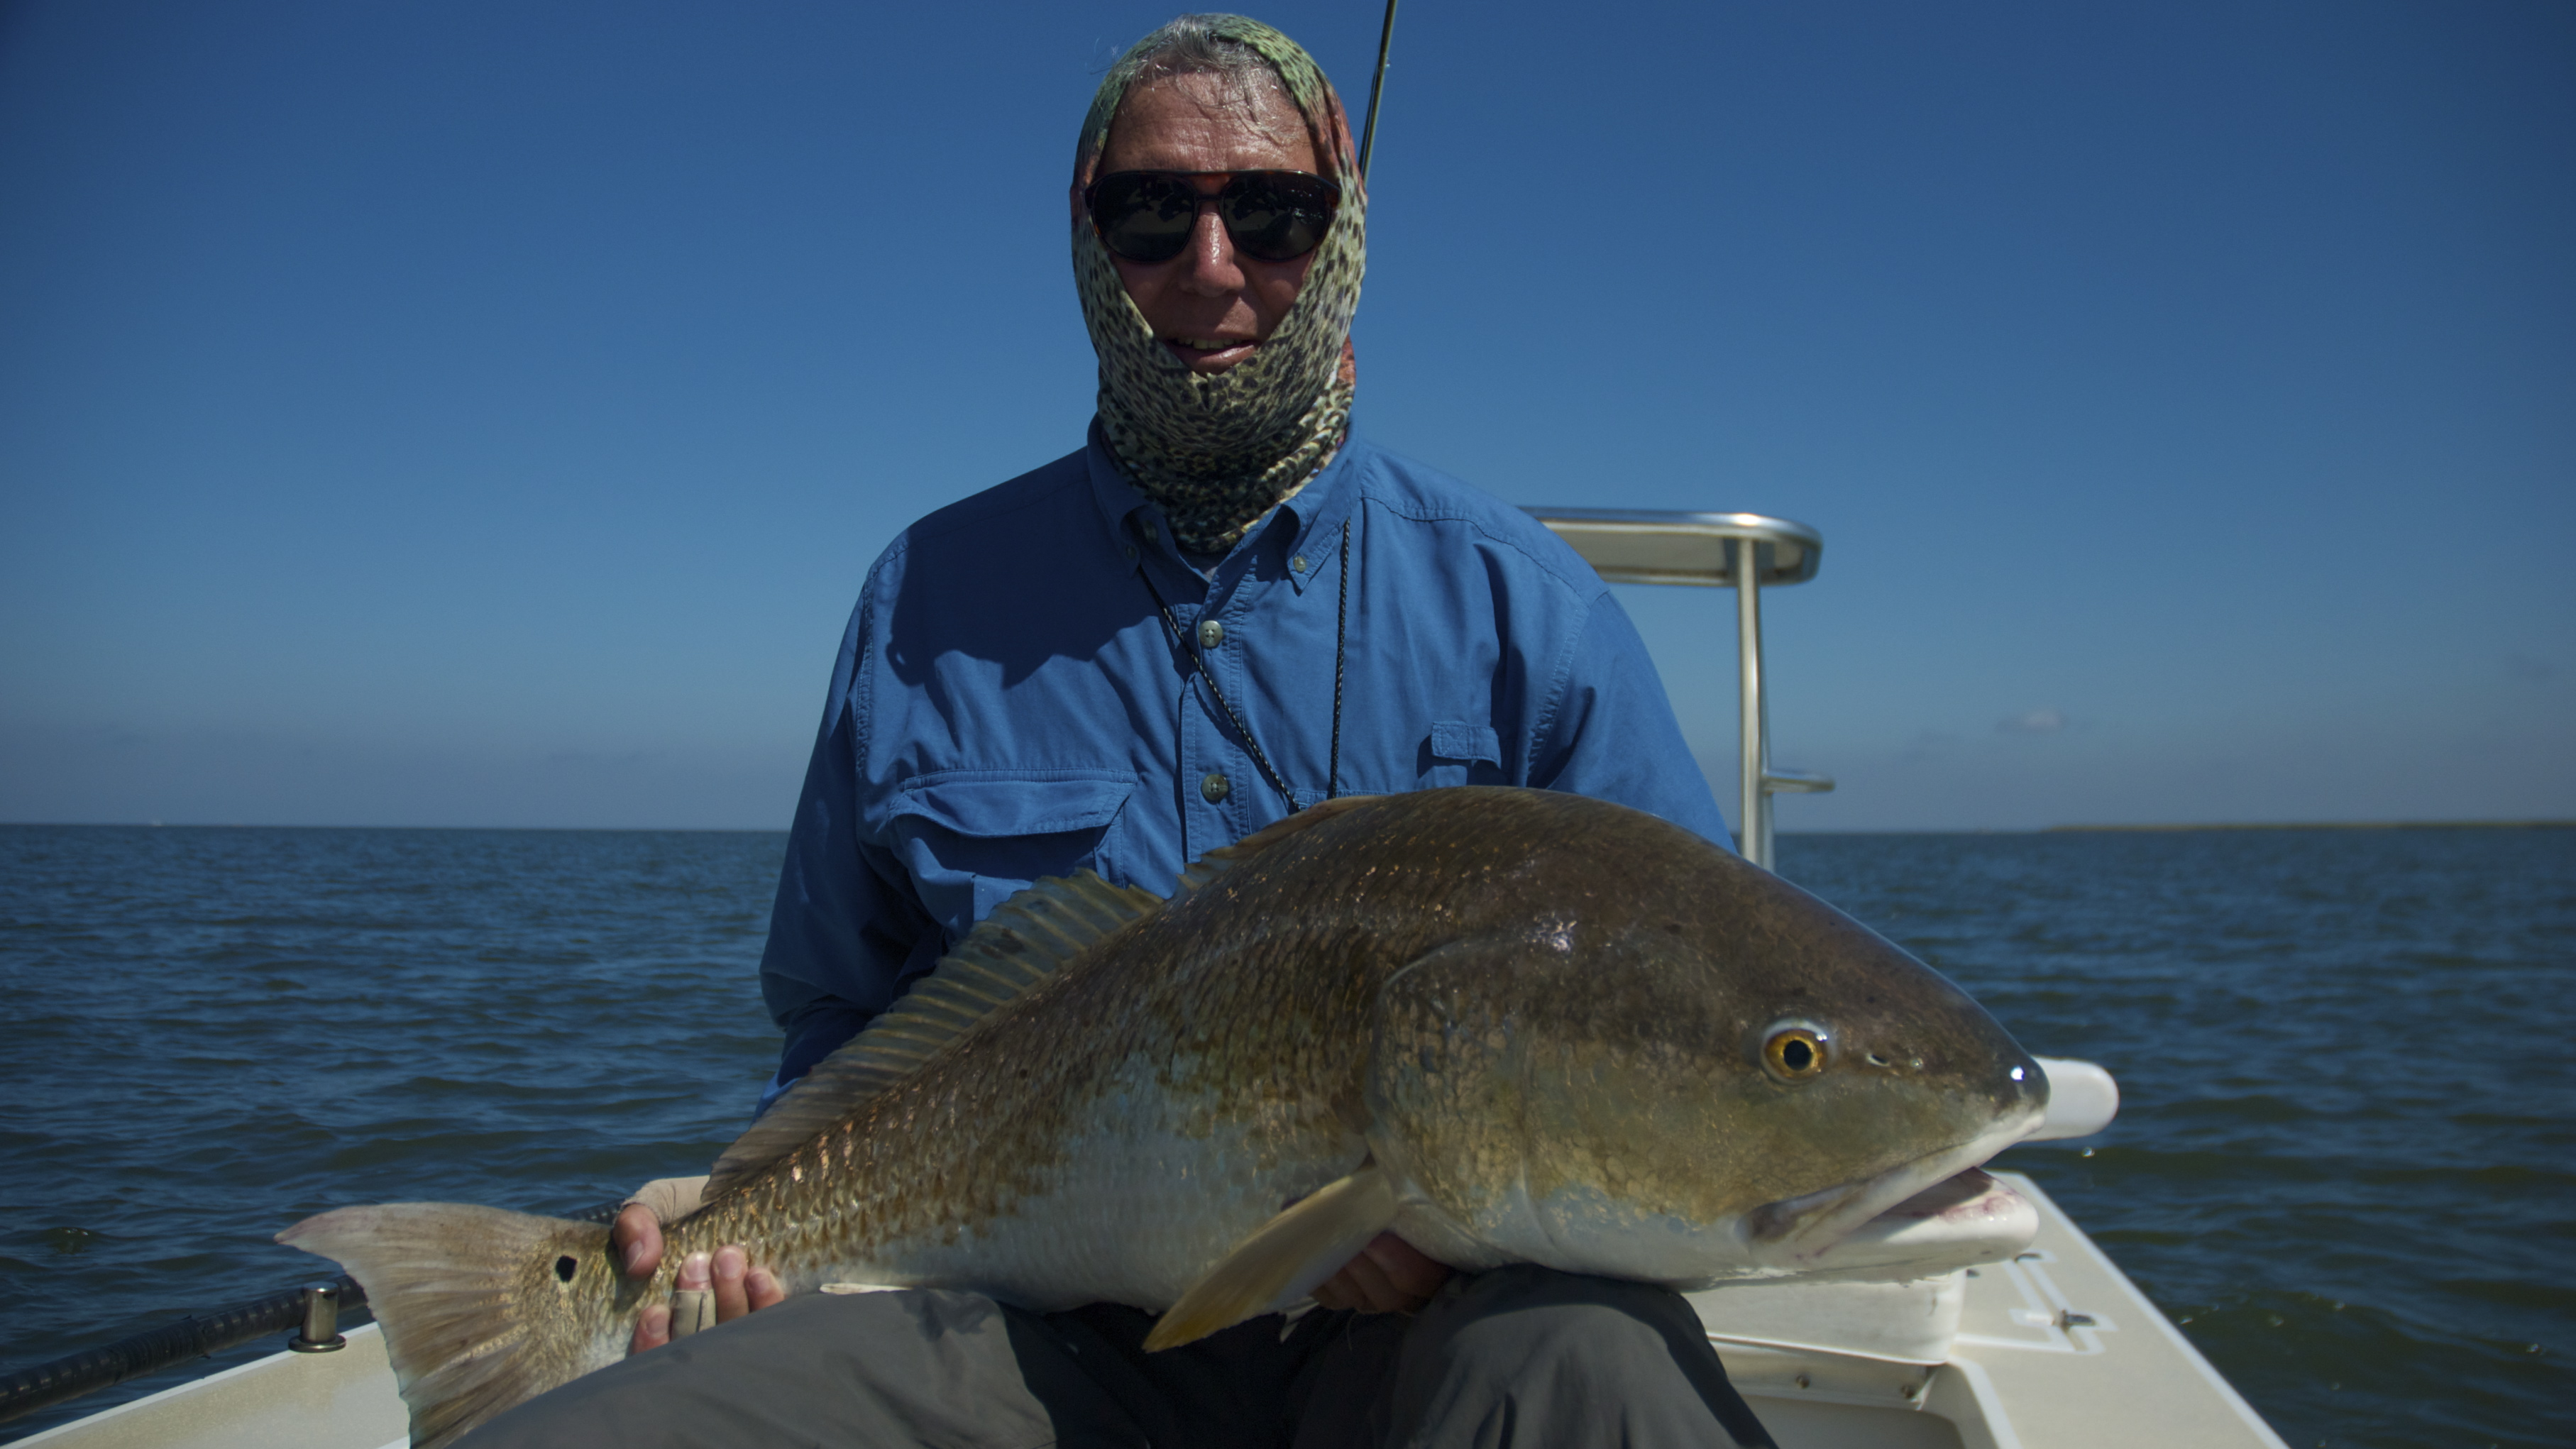 Fly fishing for redfish in louisiana shallow south for Fly fishing for redfish